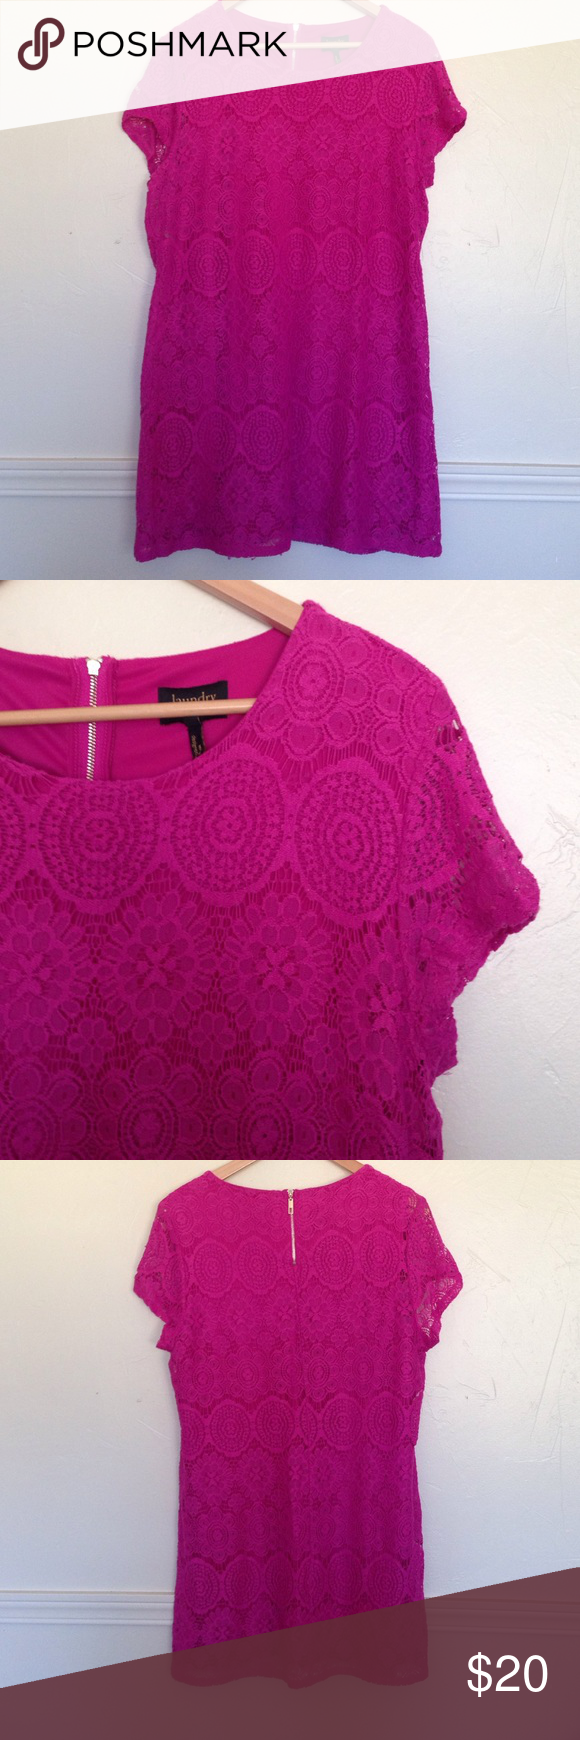 Pink Dress In brand new condition. Great for Easter!! Laundry by Shelli Segal Dresses